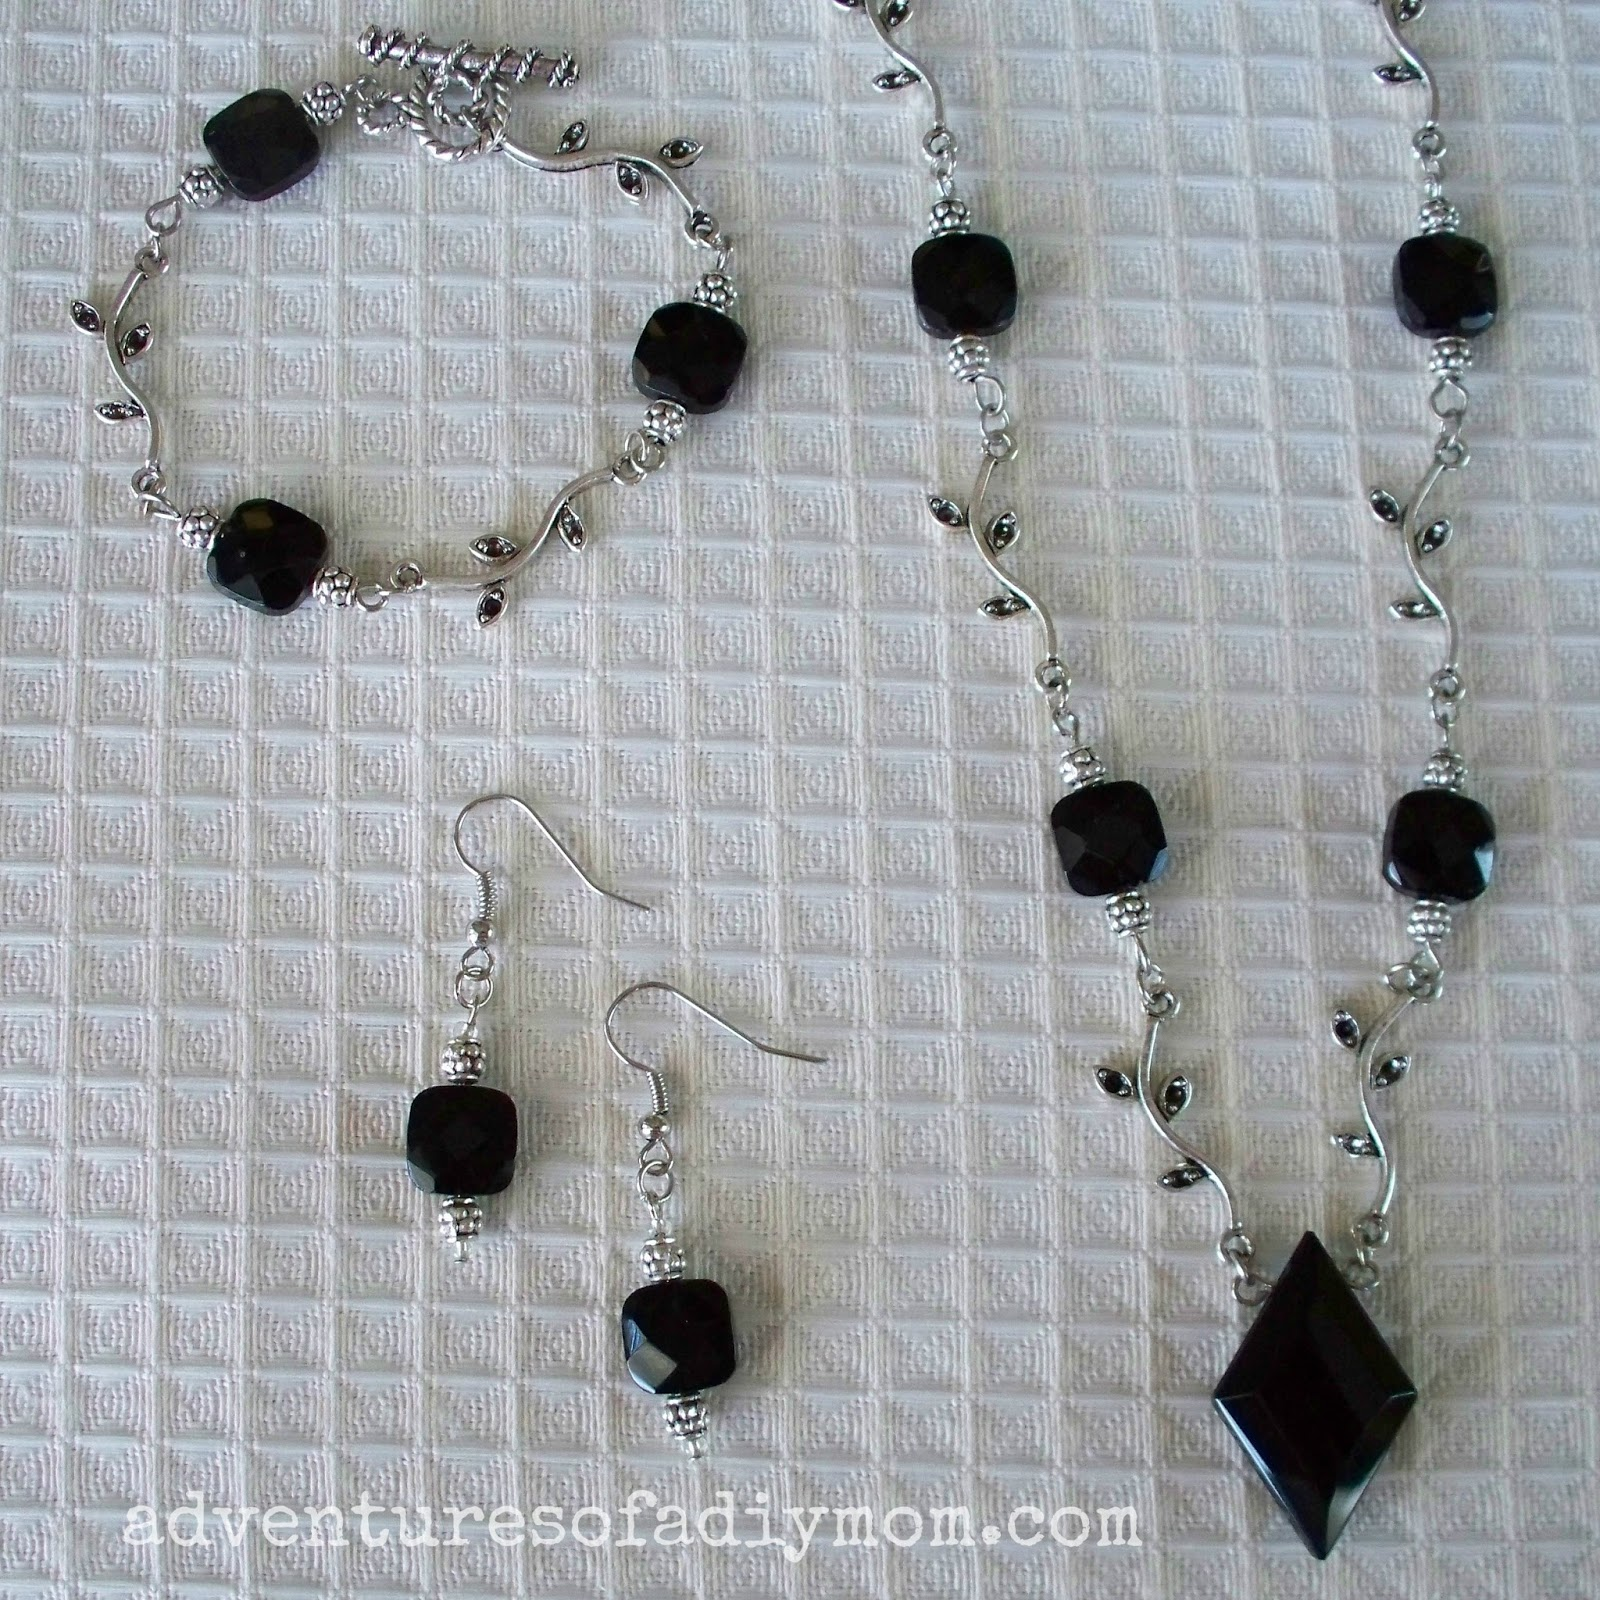 Turn a necklace into a bracelet and earrings